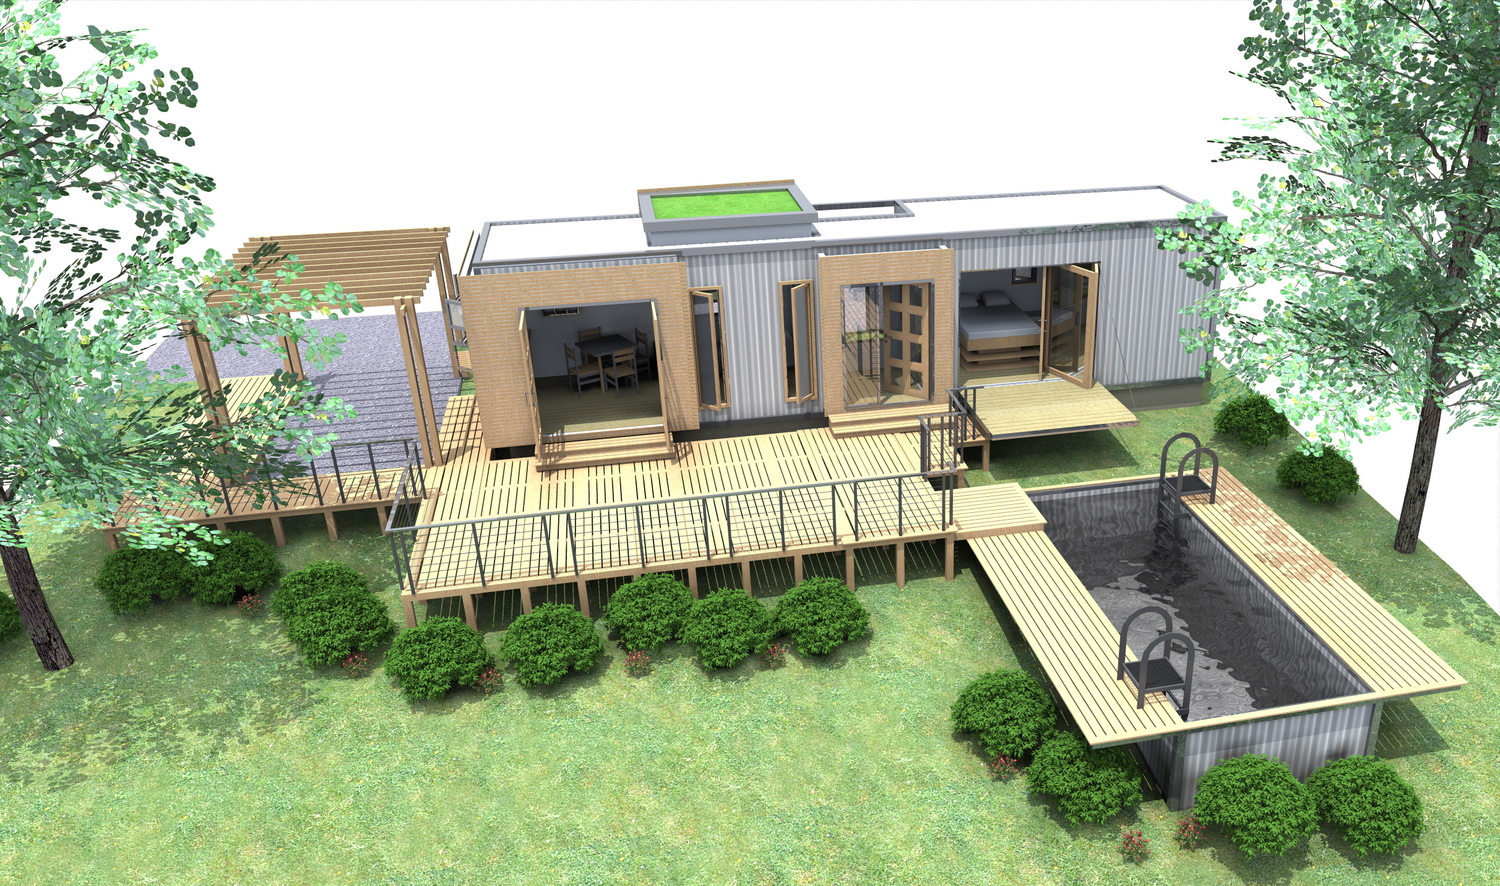 Mobiles home container homes tiny houses container houses pigs design container pools eco - Container home architect ...